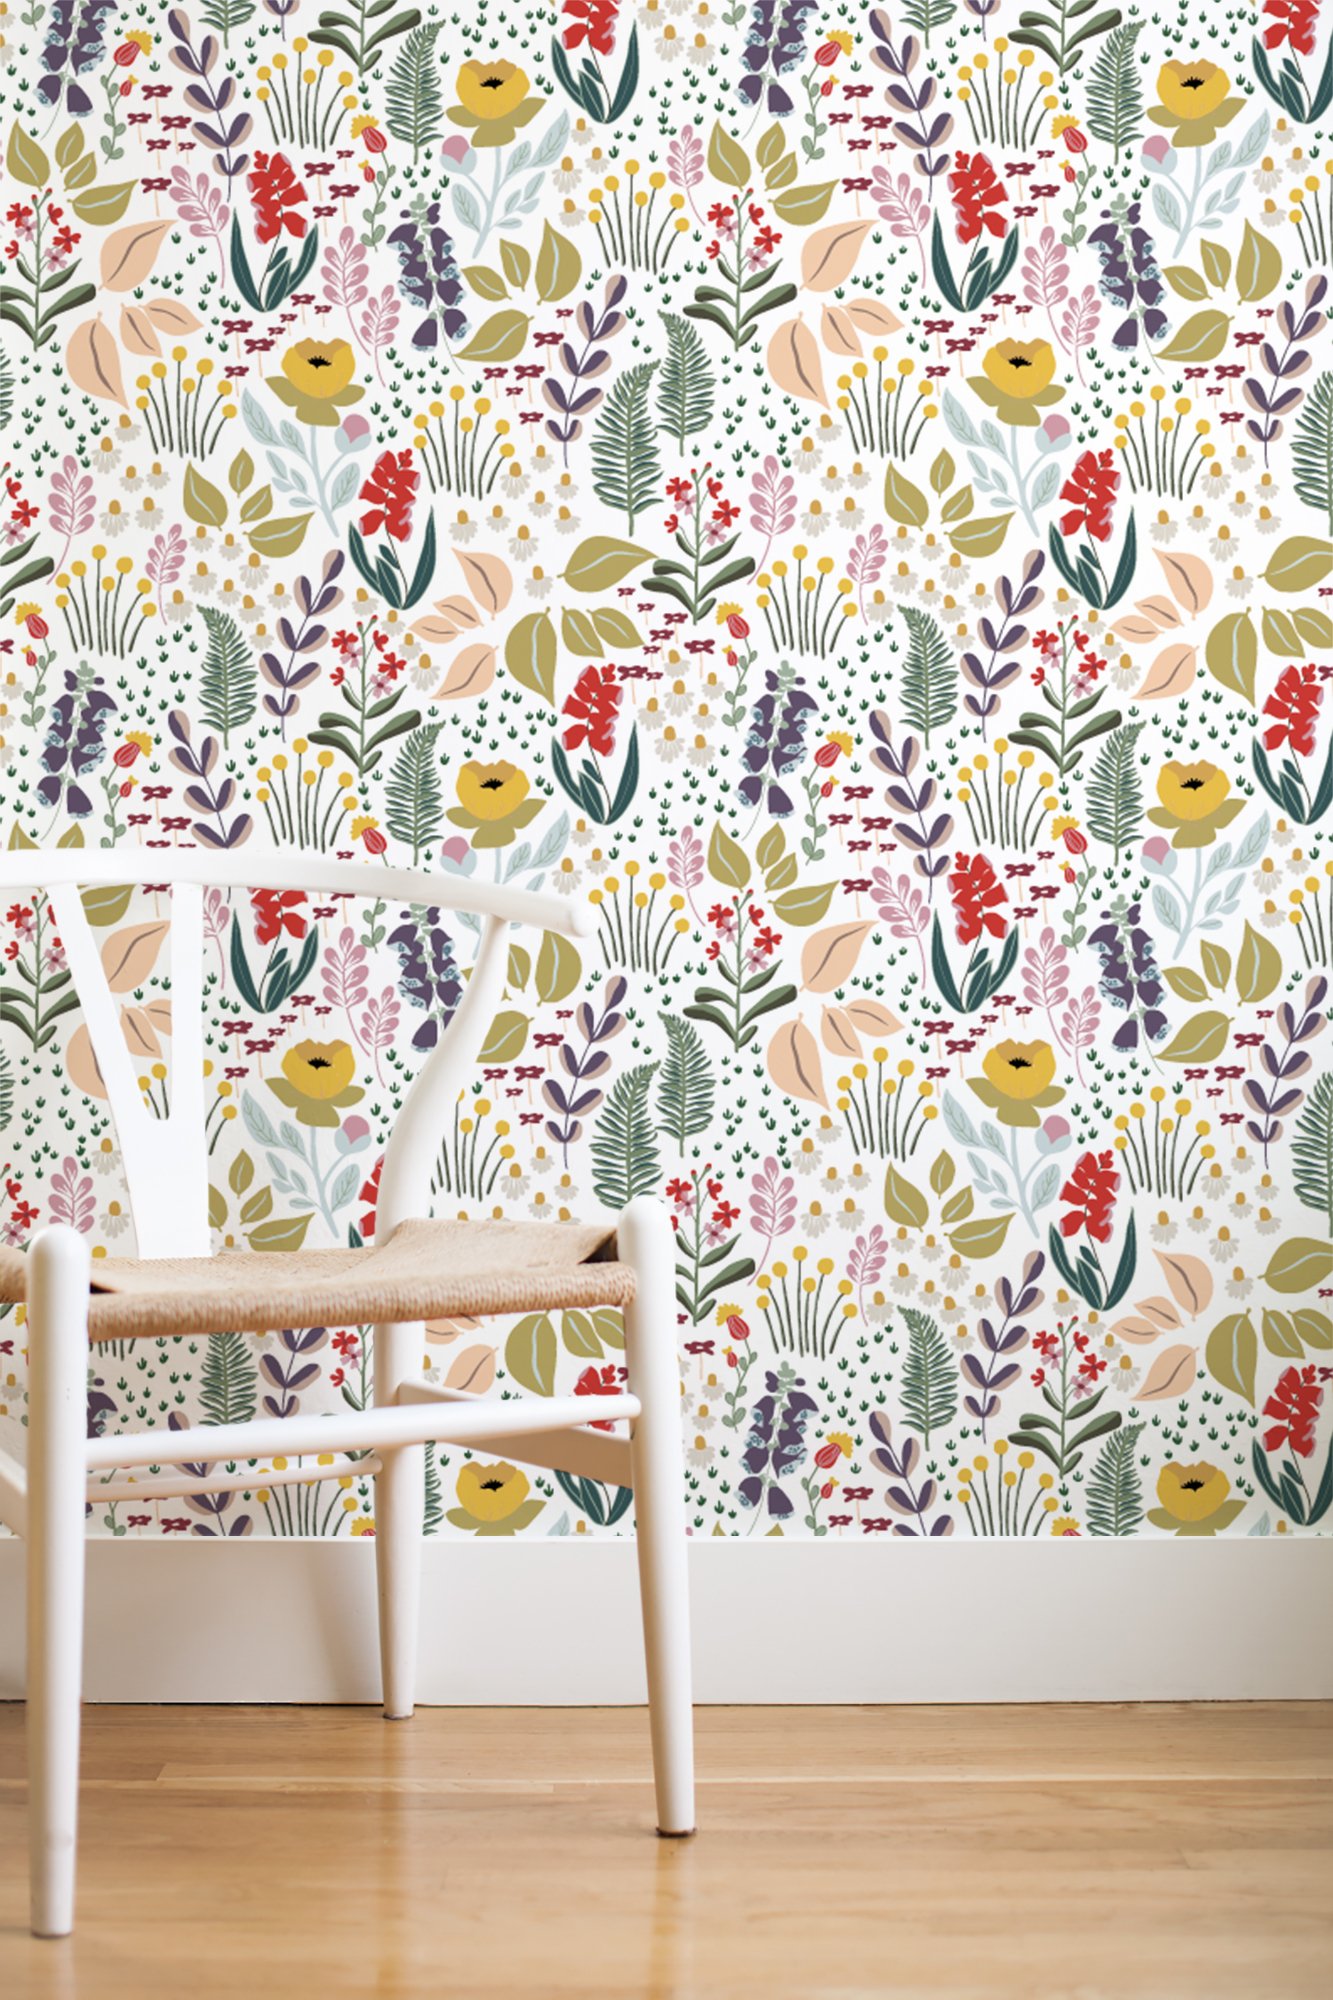 Removable Wallpapers Giant Murals And Prints SoonKIDS CLOTHING